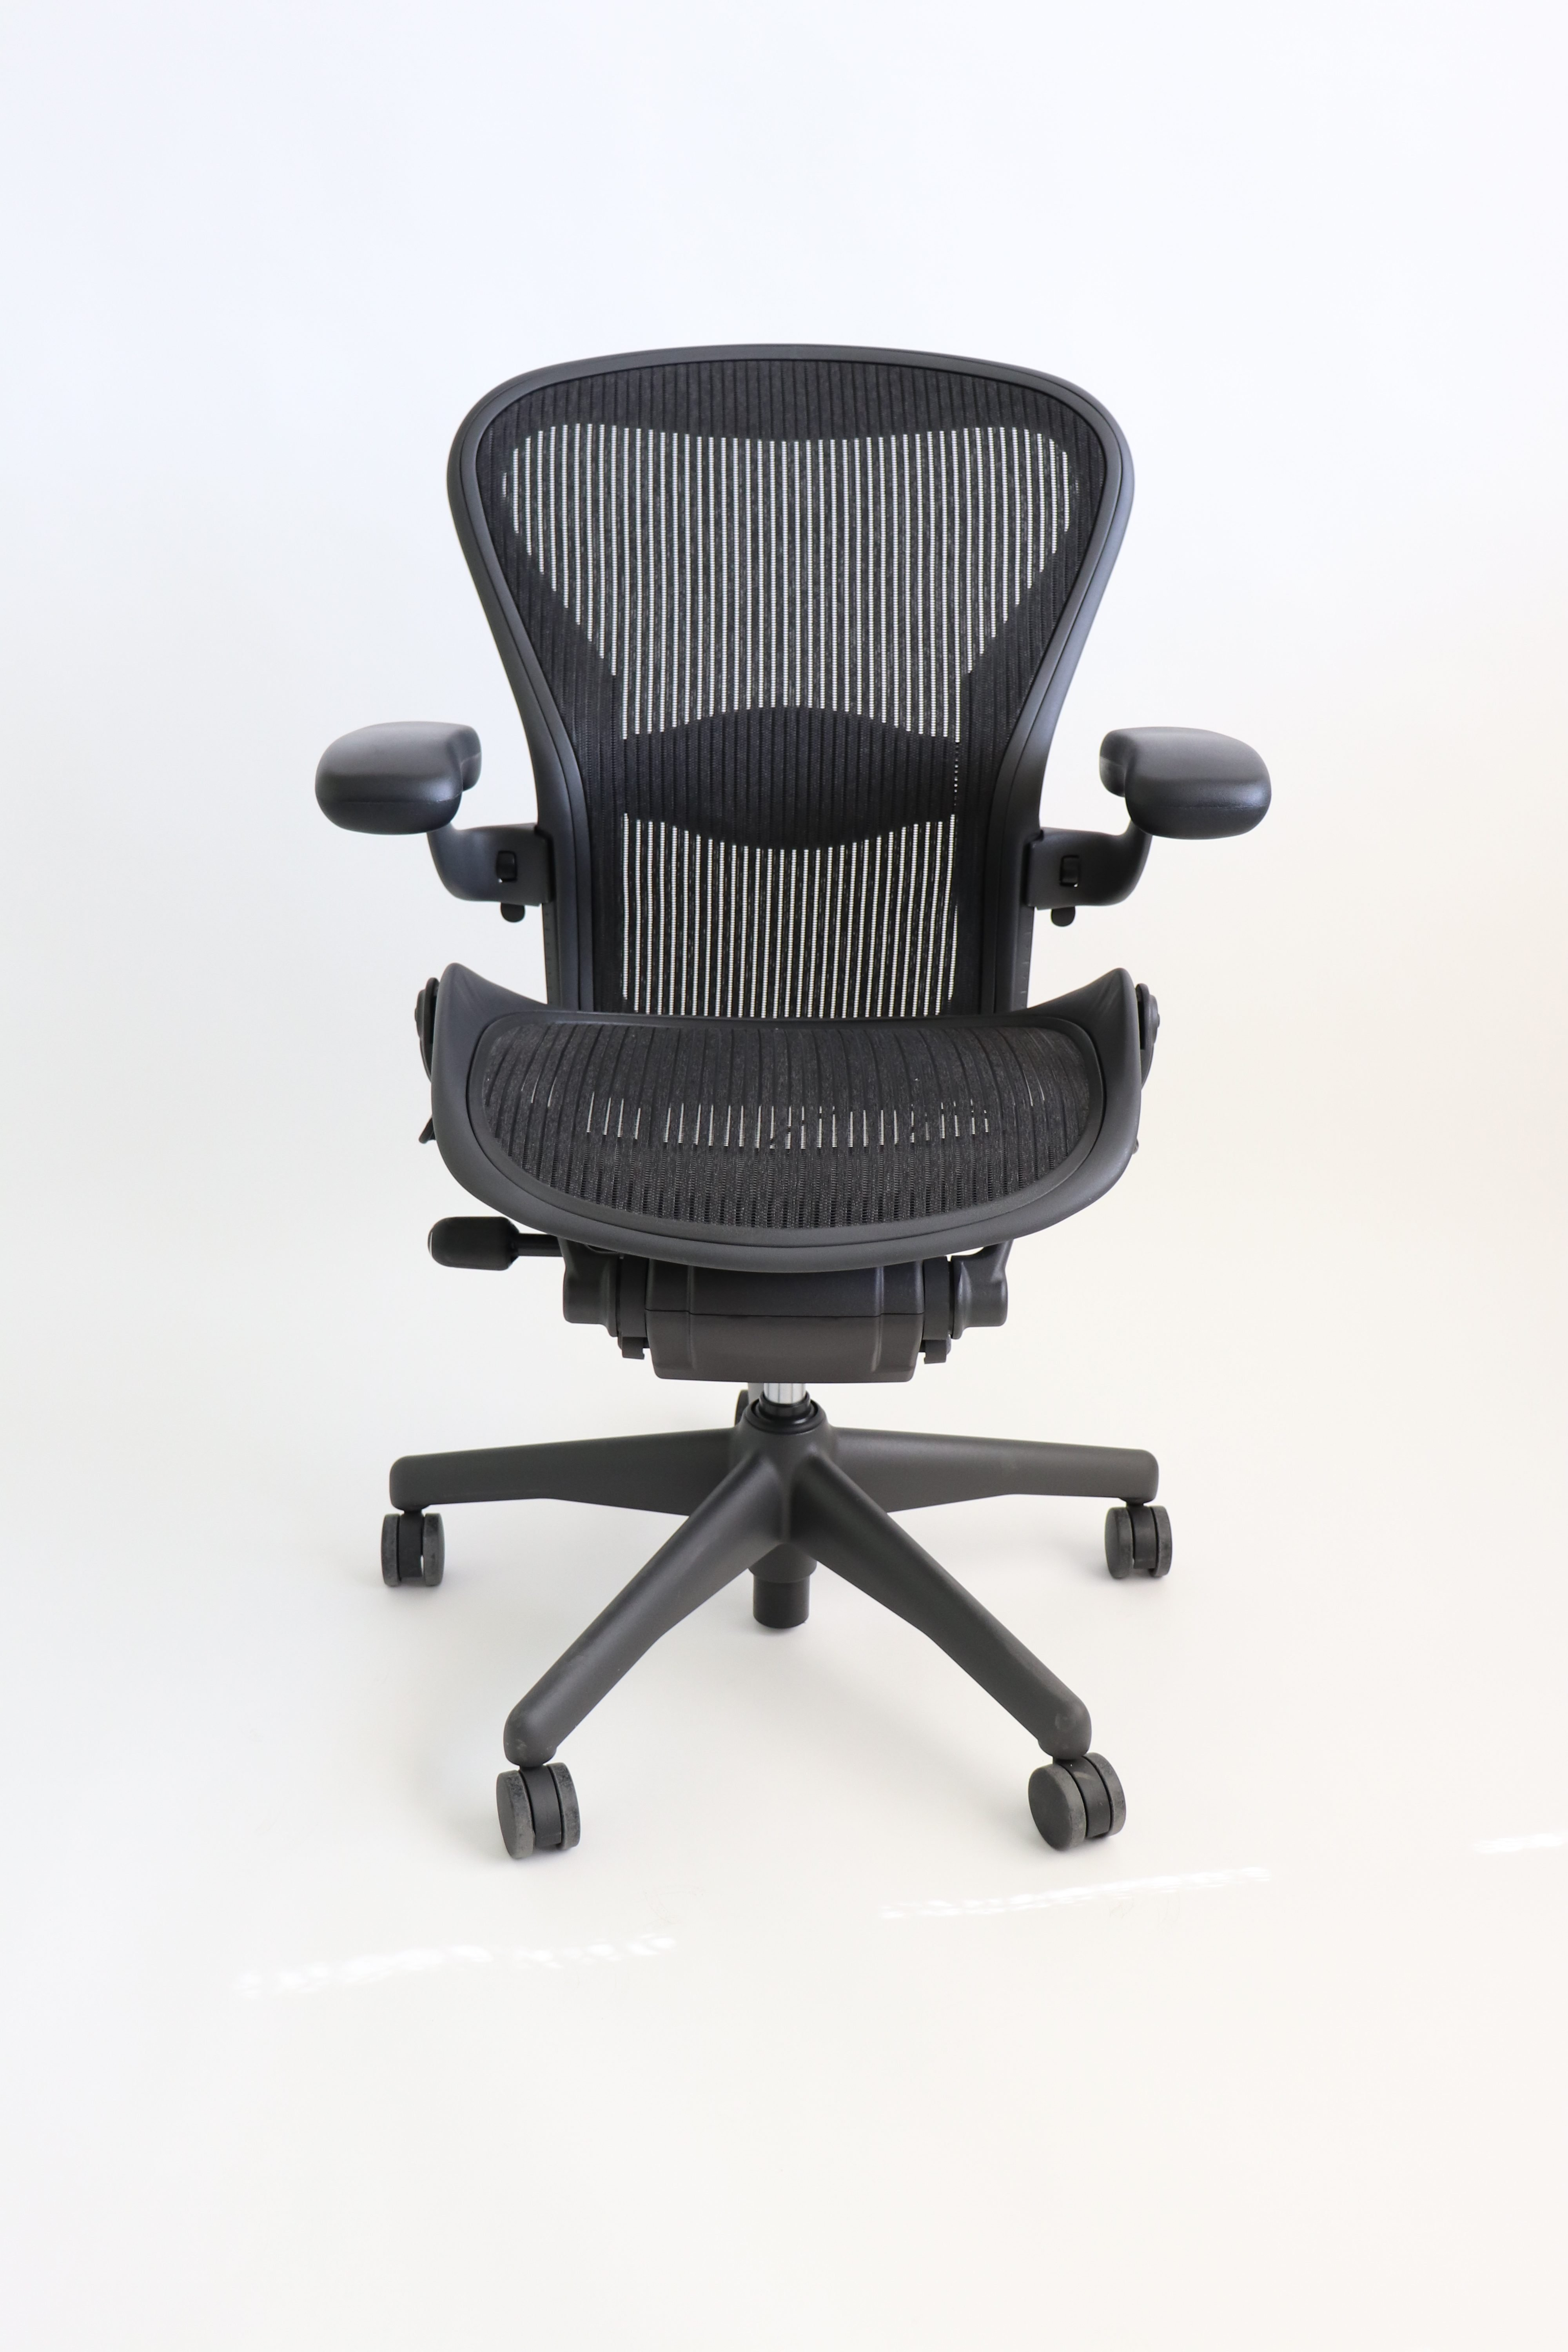 & Aeron Chair - Fully Loaded - Office Outlet